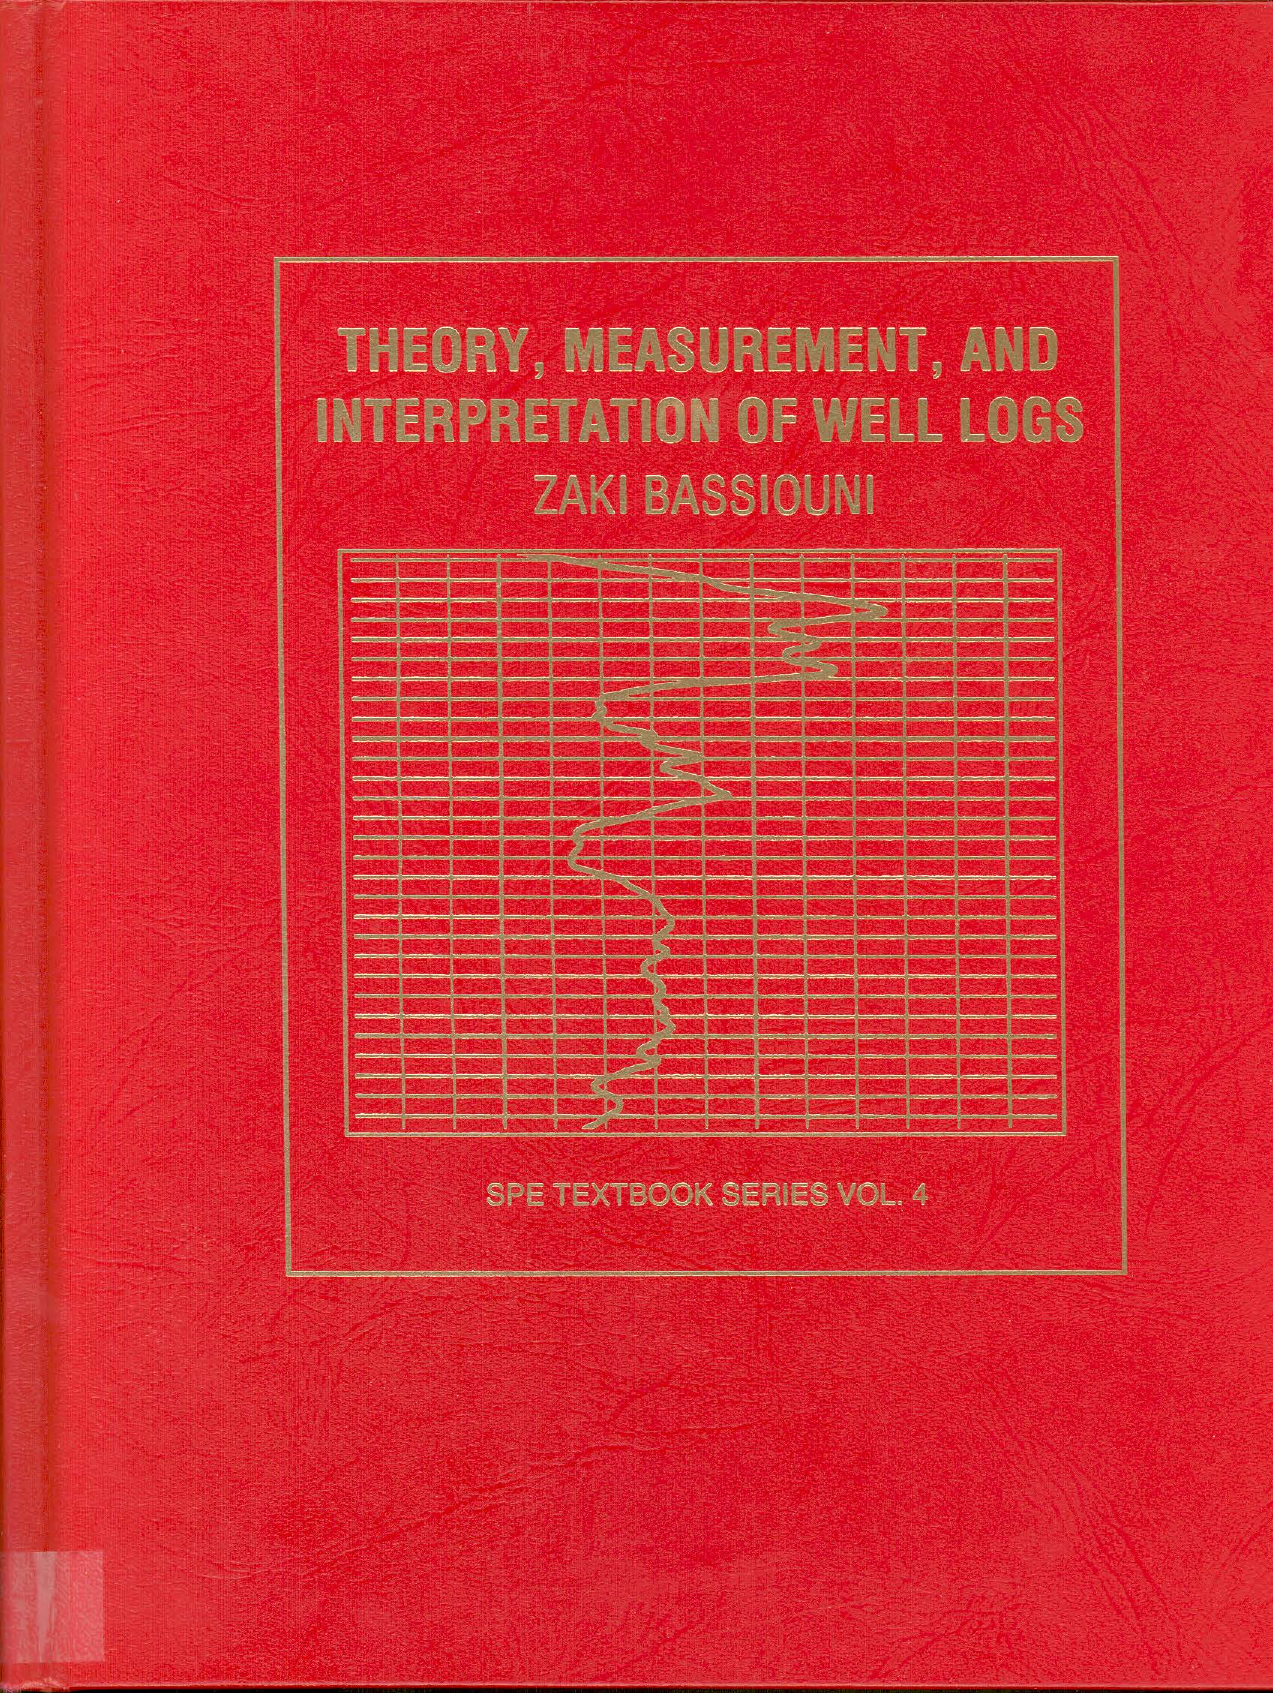 Theory, Measurement, and Interpretation of Well